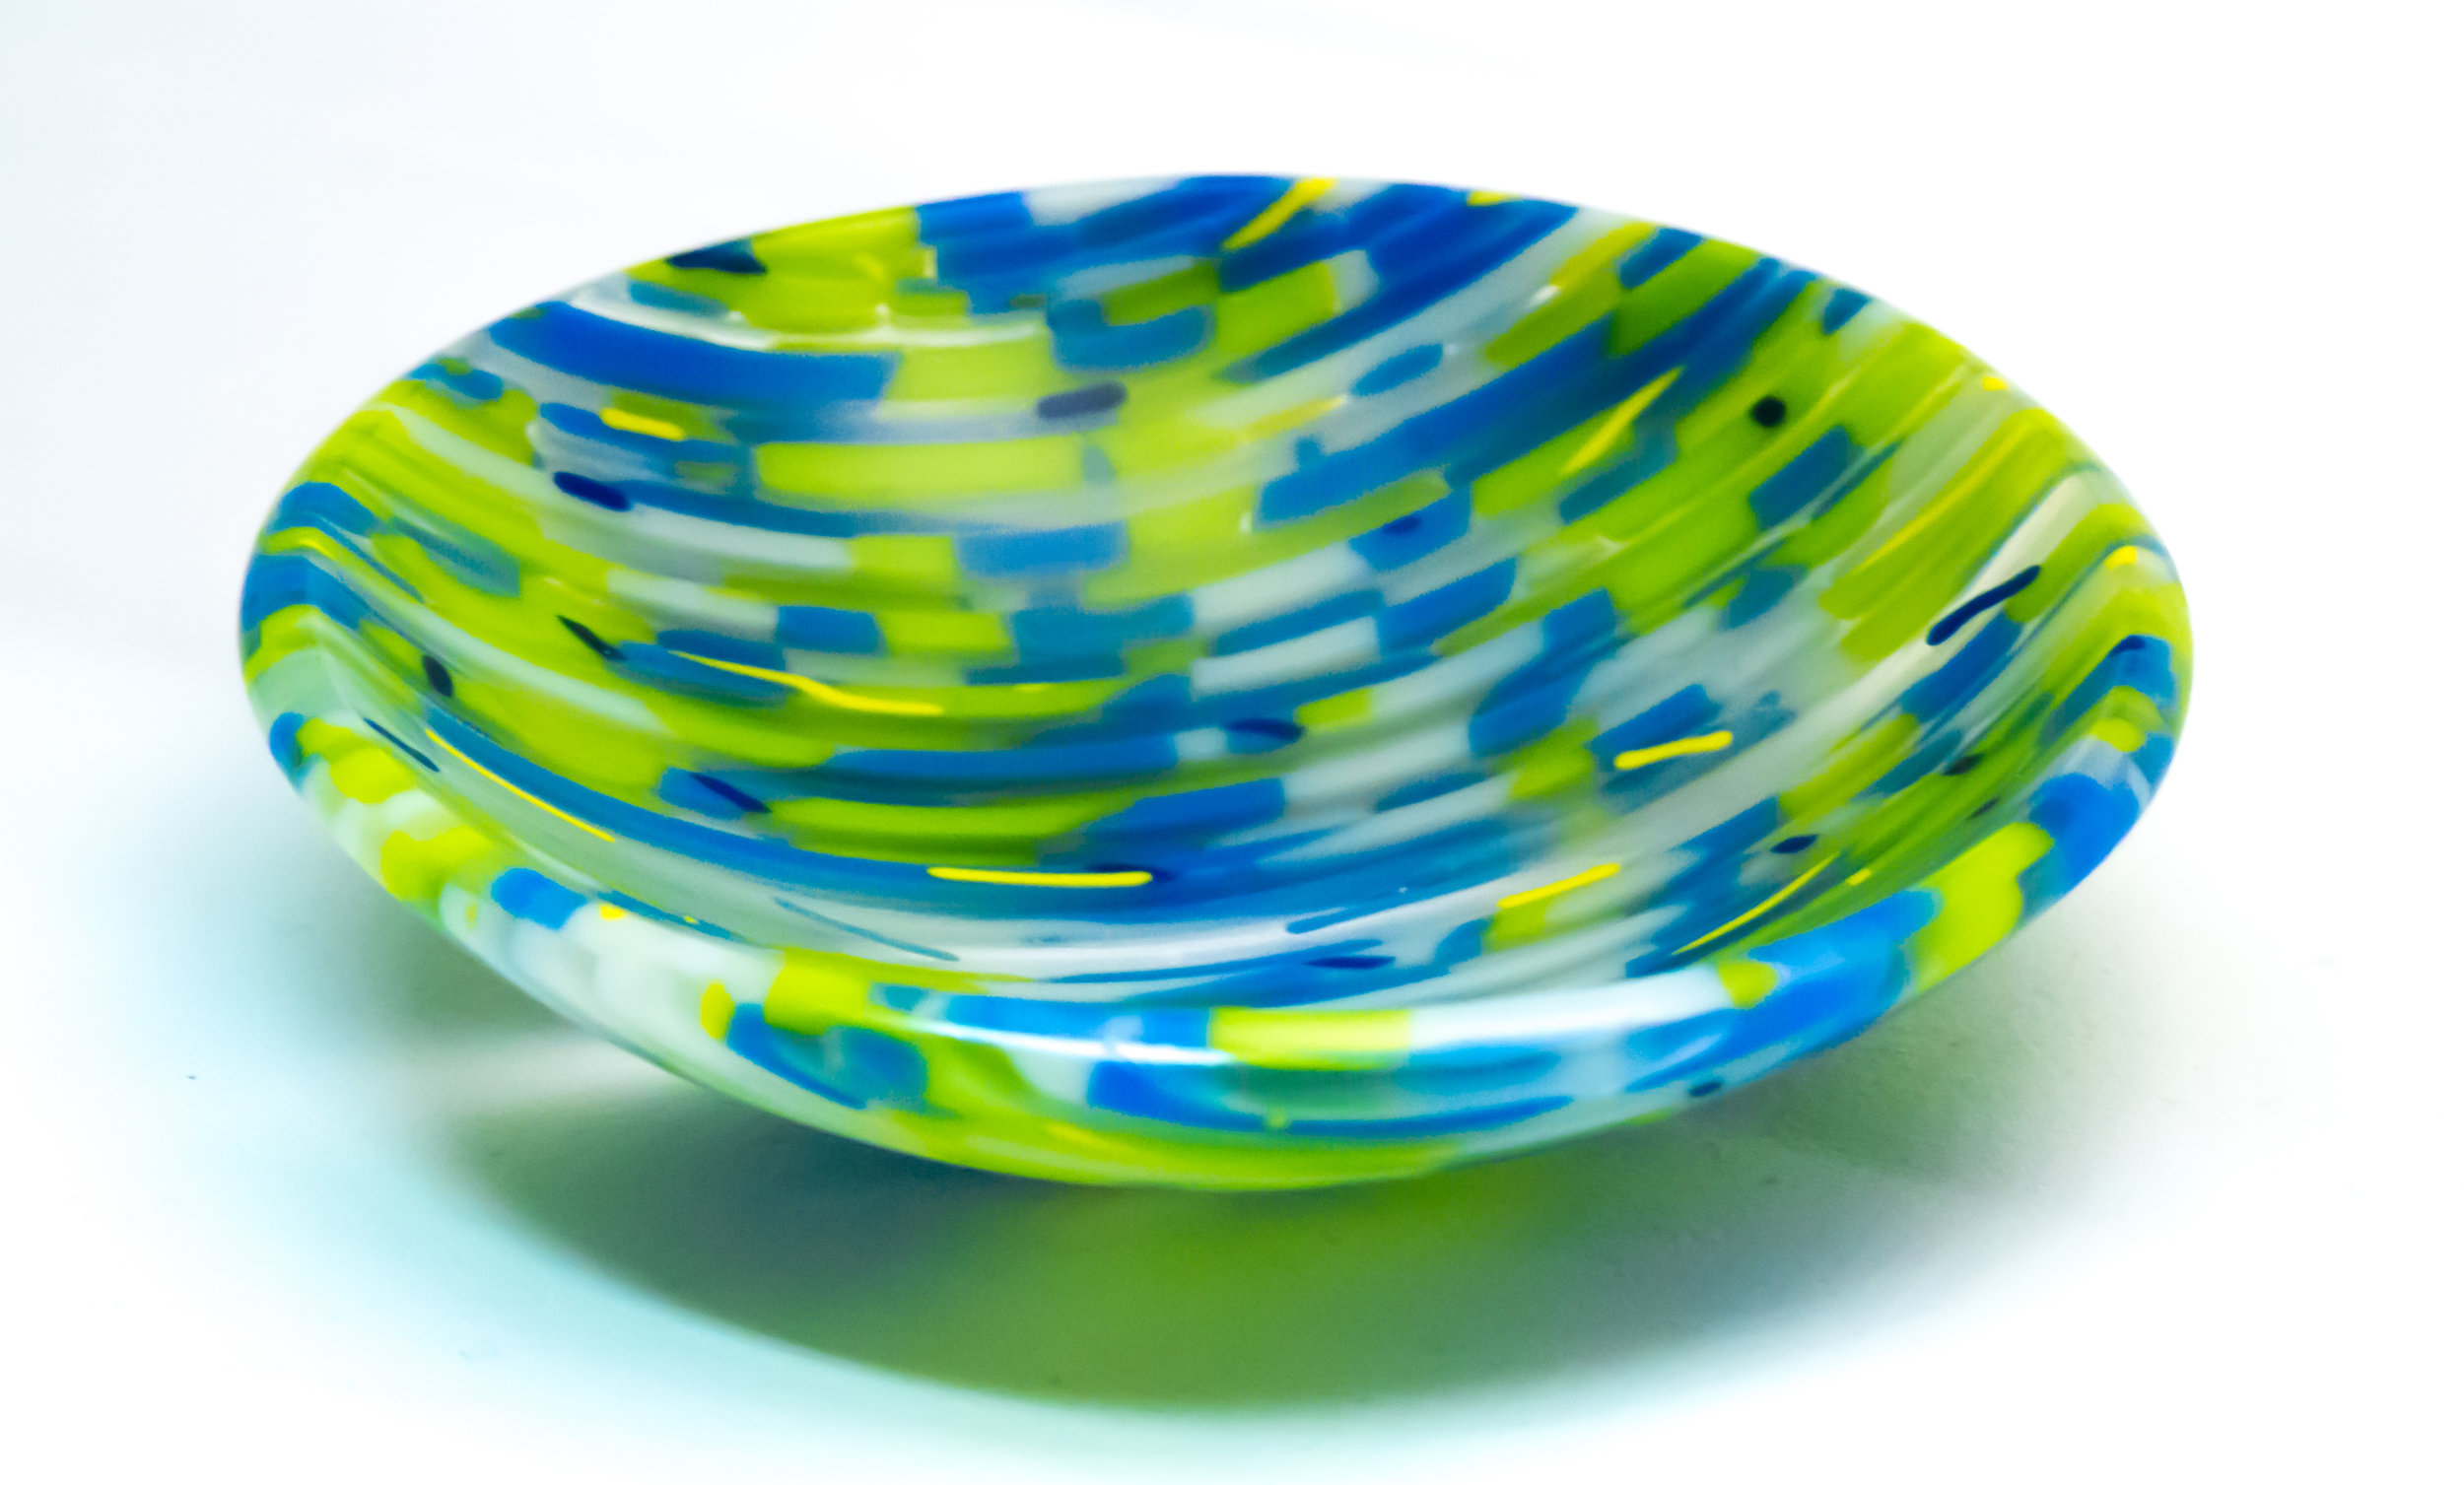 GBGlass - Glass inspired by geometric patterns in nature and architecture as well as contemporary design and re-occurring themes of colors